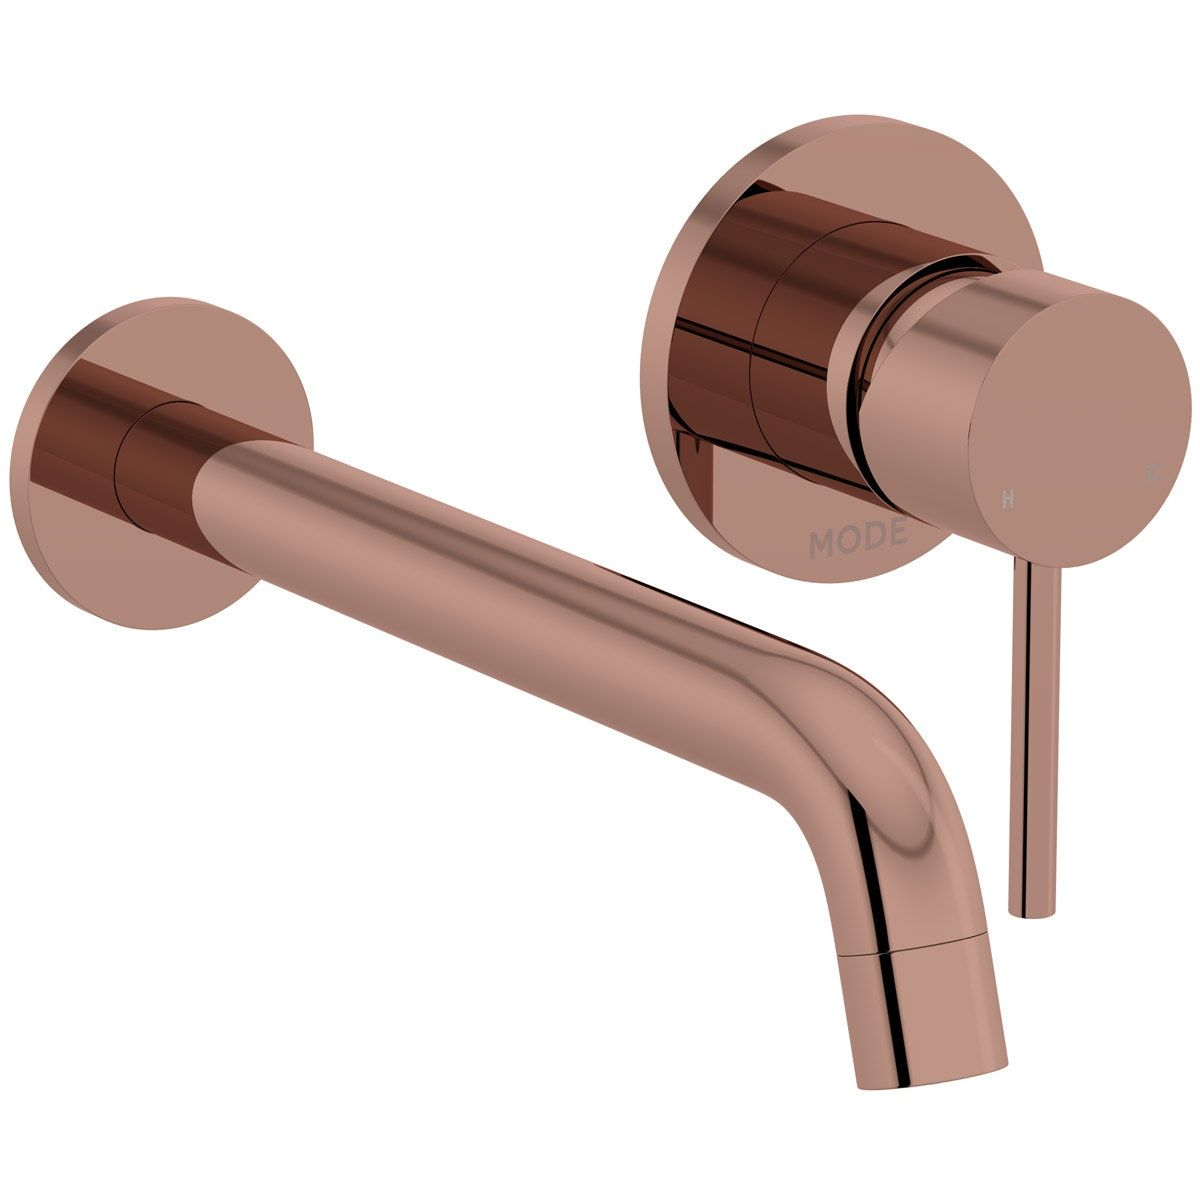 Click Here To Find Out More About Mode Spencer Round Wall Mounted Rose Gold Basin Mixer Tap Offer Pack Basin Mixer Taps Sink Taps Basin Mixer